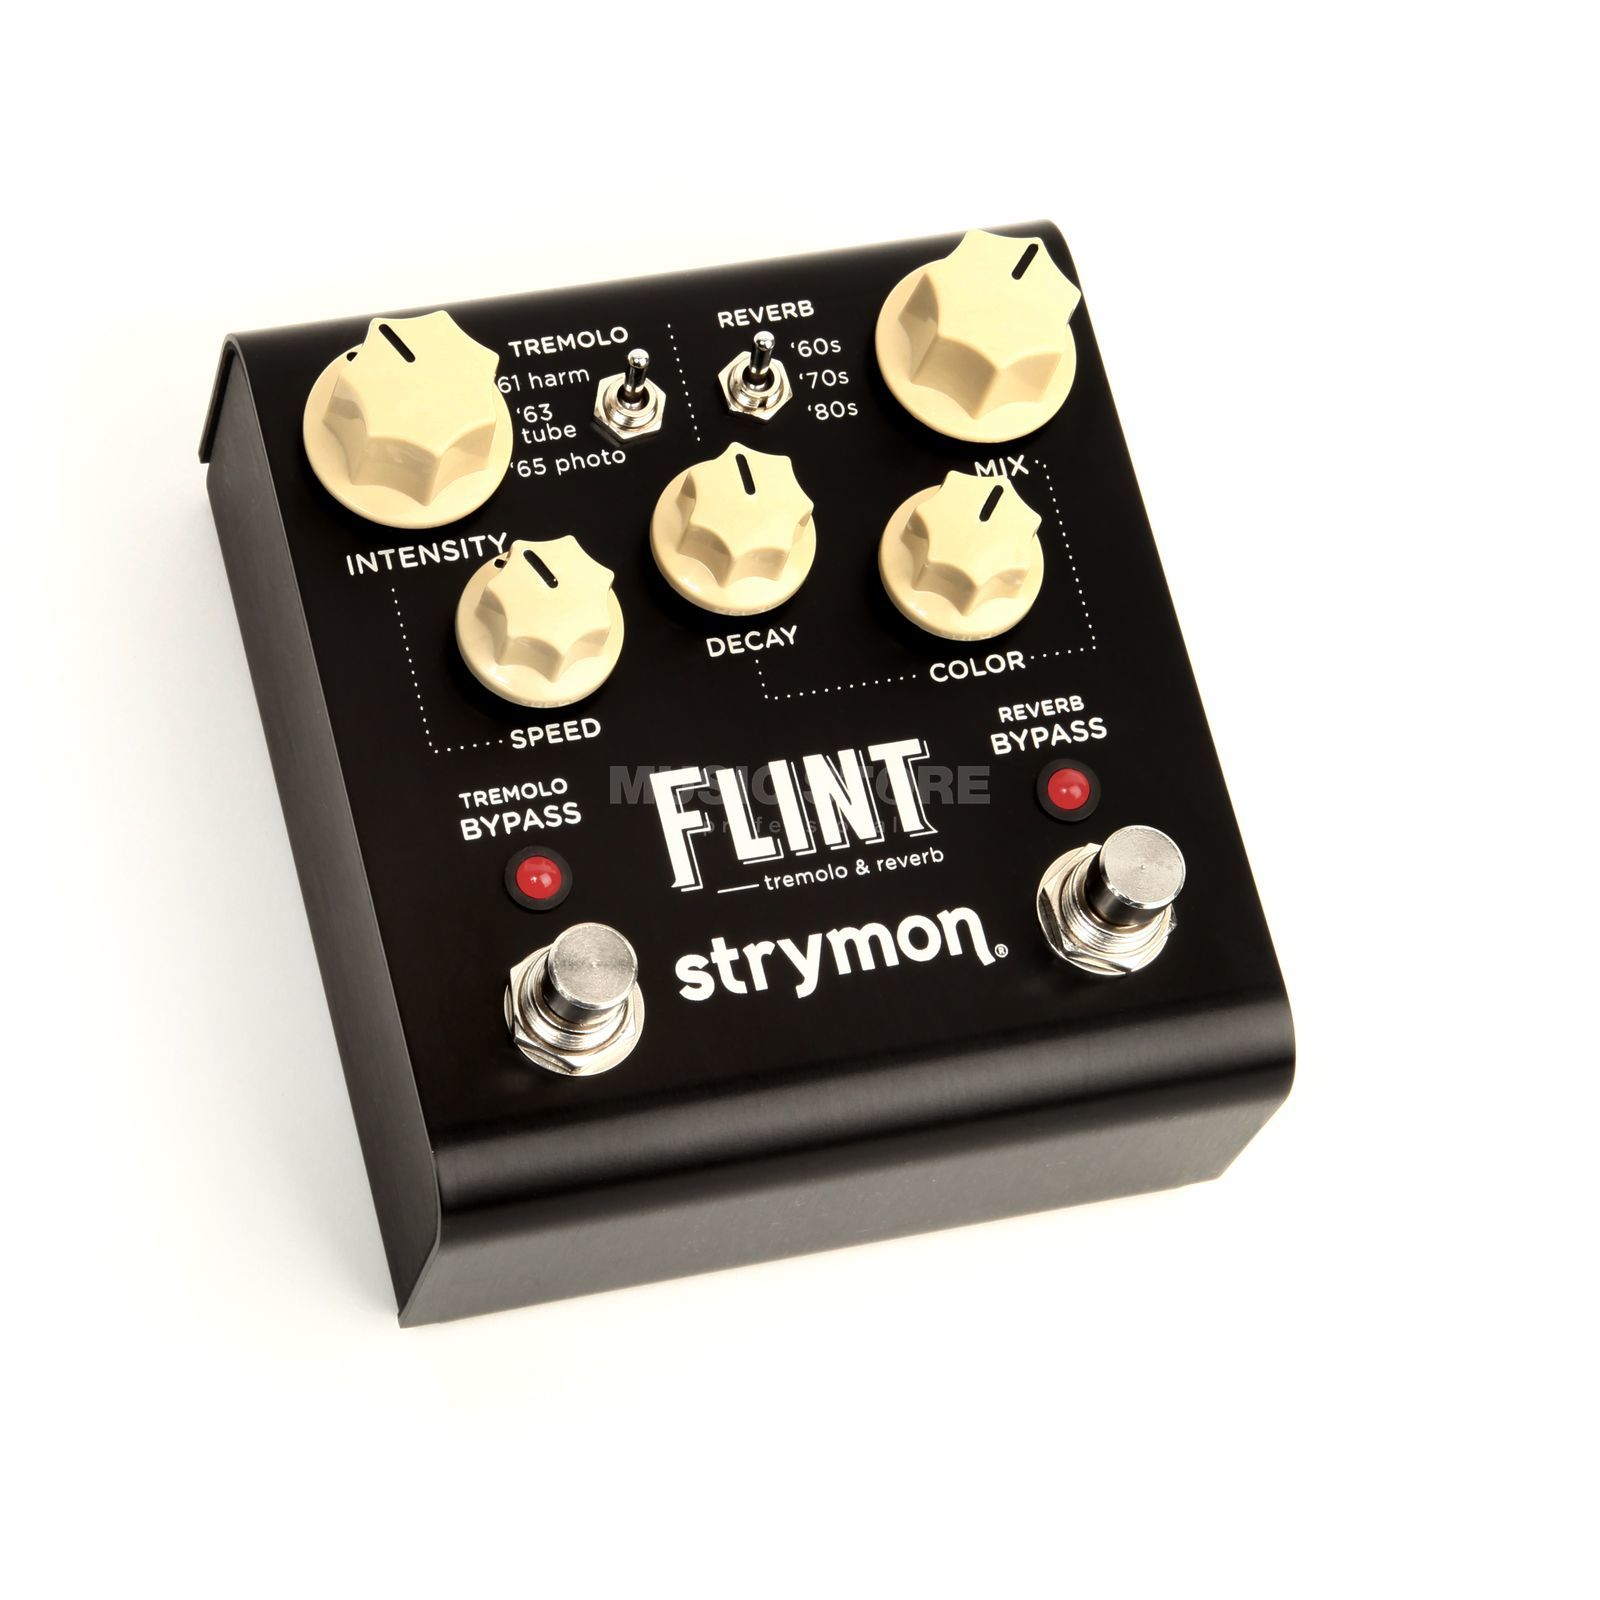 Strymon Flint Tremolo & Reverb Guitar  Effects Pedal   Produktbillede